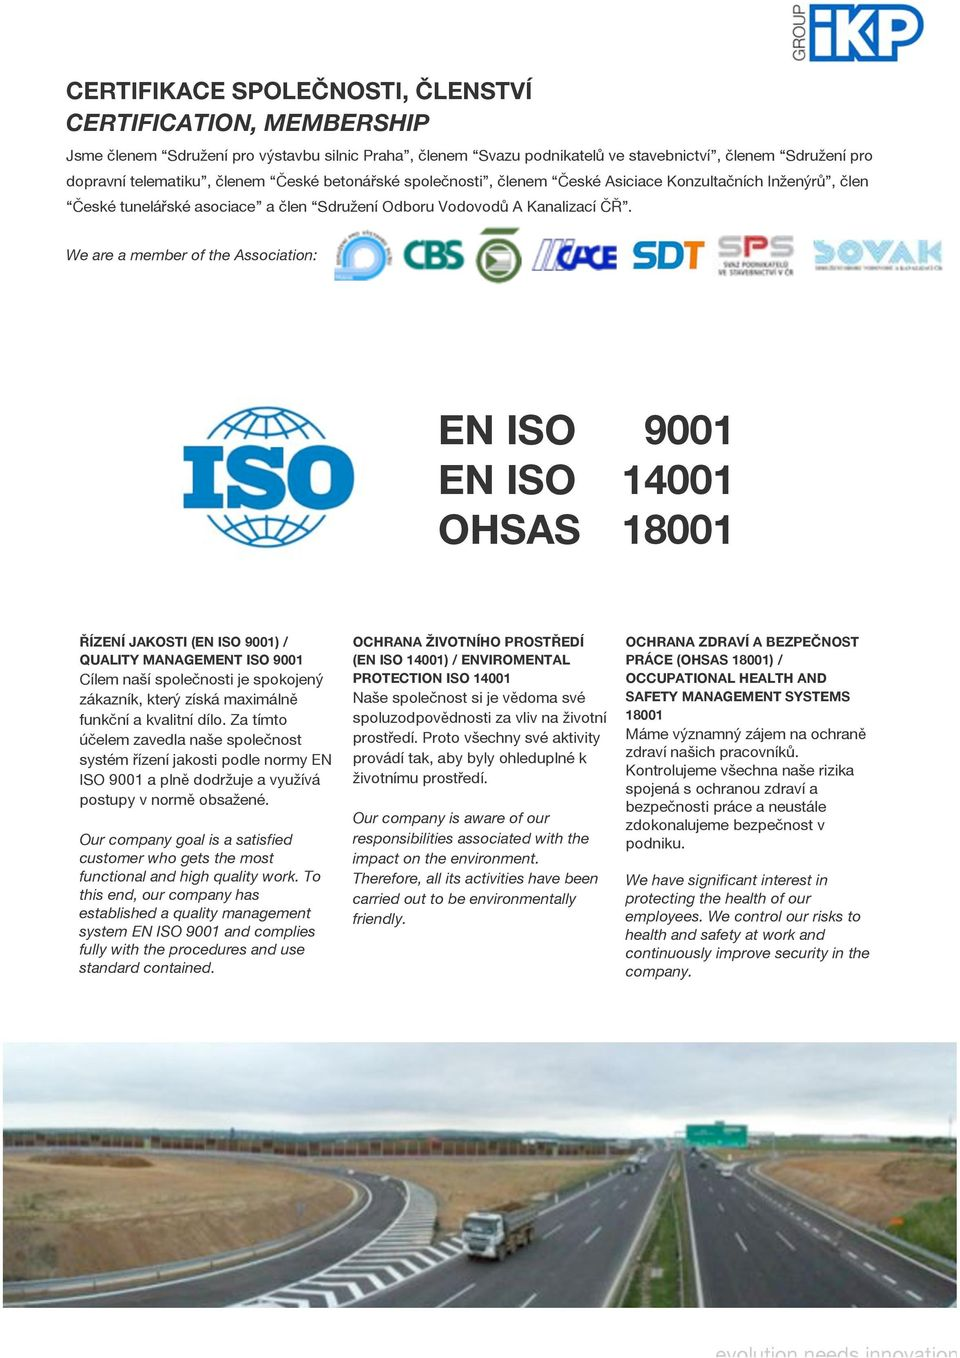 We are a member of the Association: EN ISO 9001 EN ISO 14001 OHSAS 18001 ŘÍZENÍ JAKOSTI (EN ISO 9001) / QUALITY MANAGEMENT ISO 9001 Cílem naší společnosti je spokojený zákazník, který získá maximálně